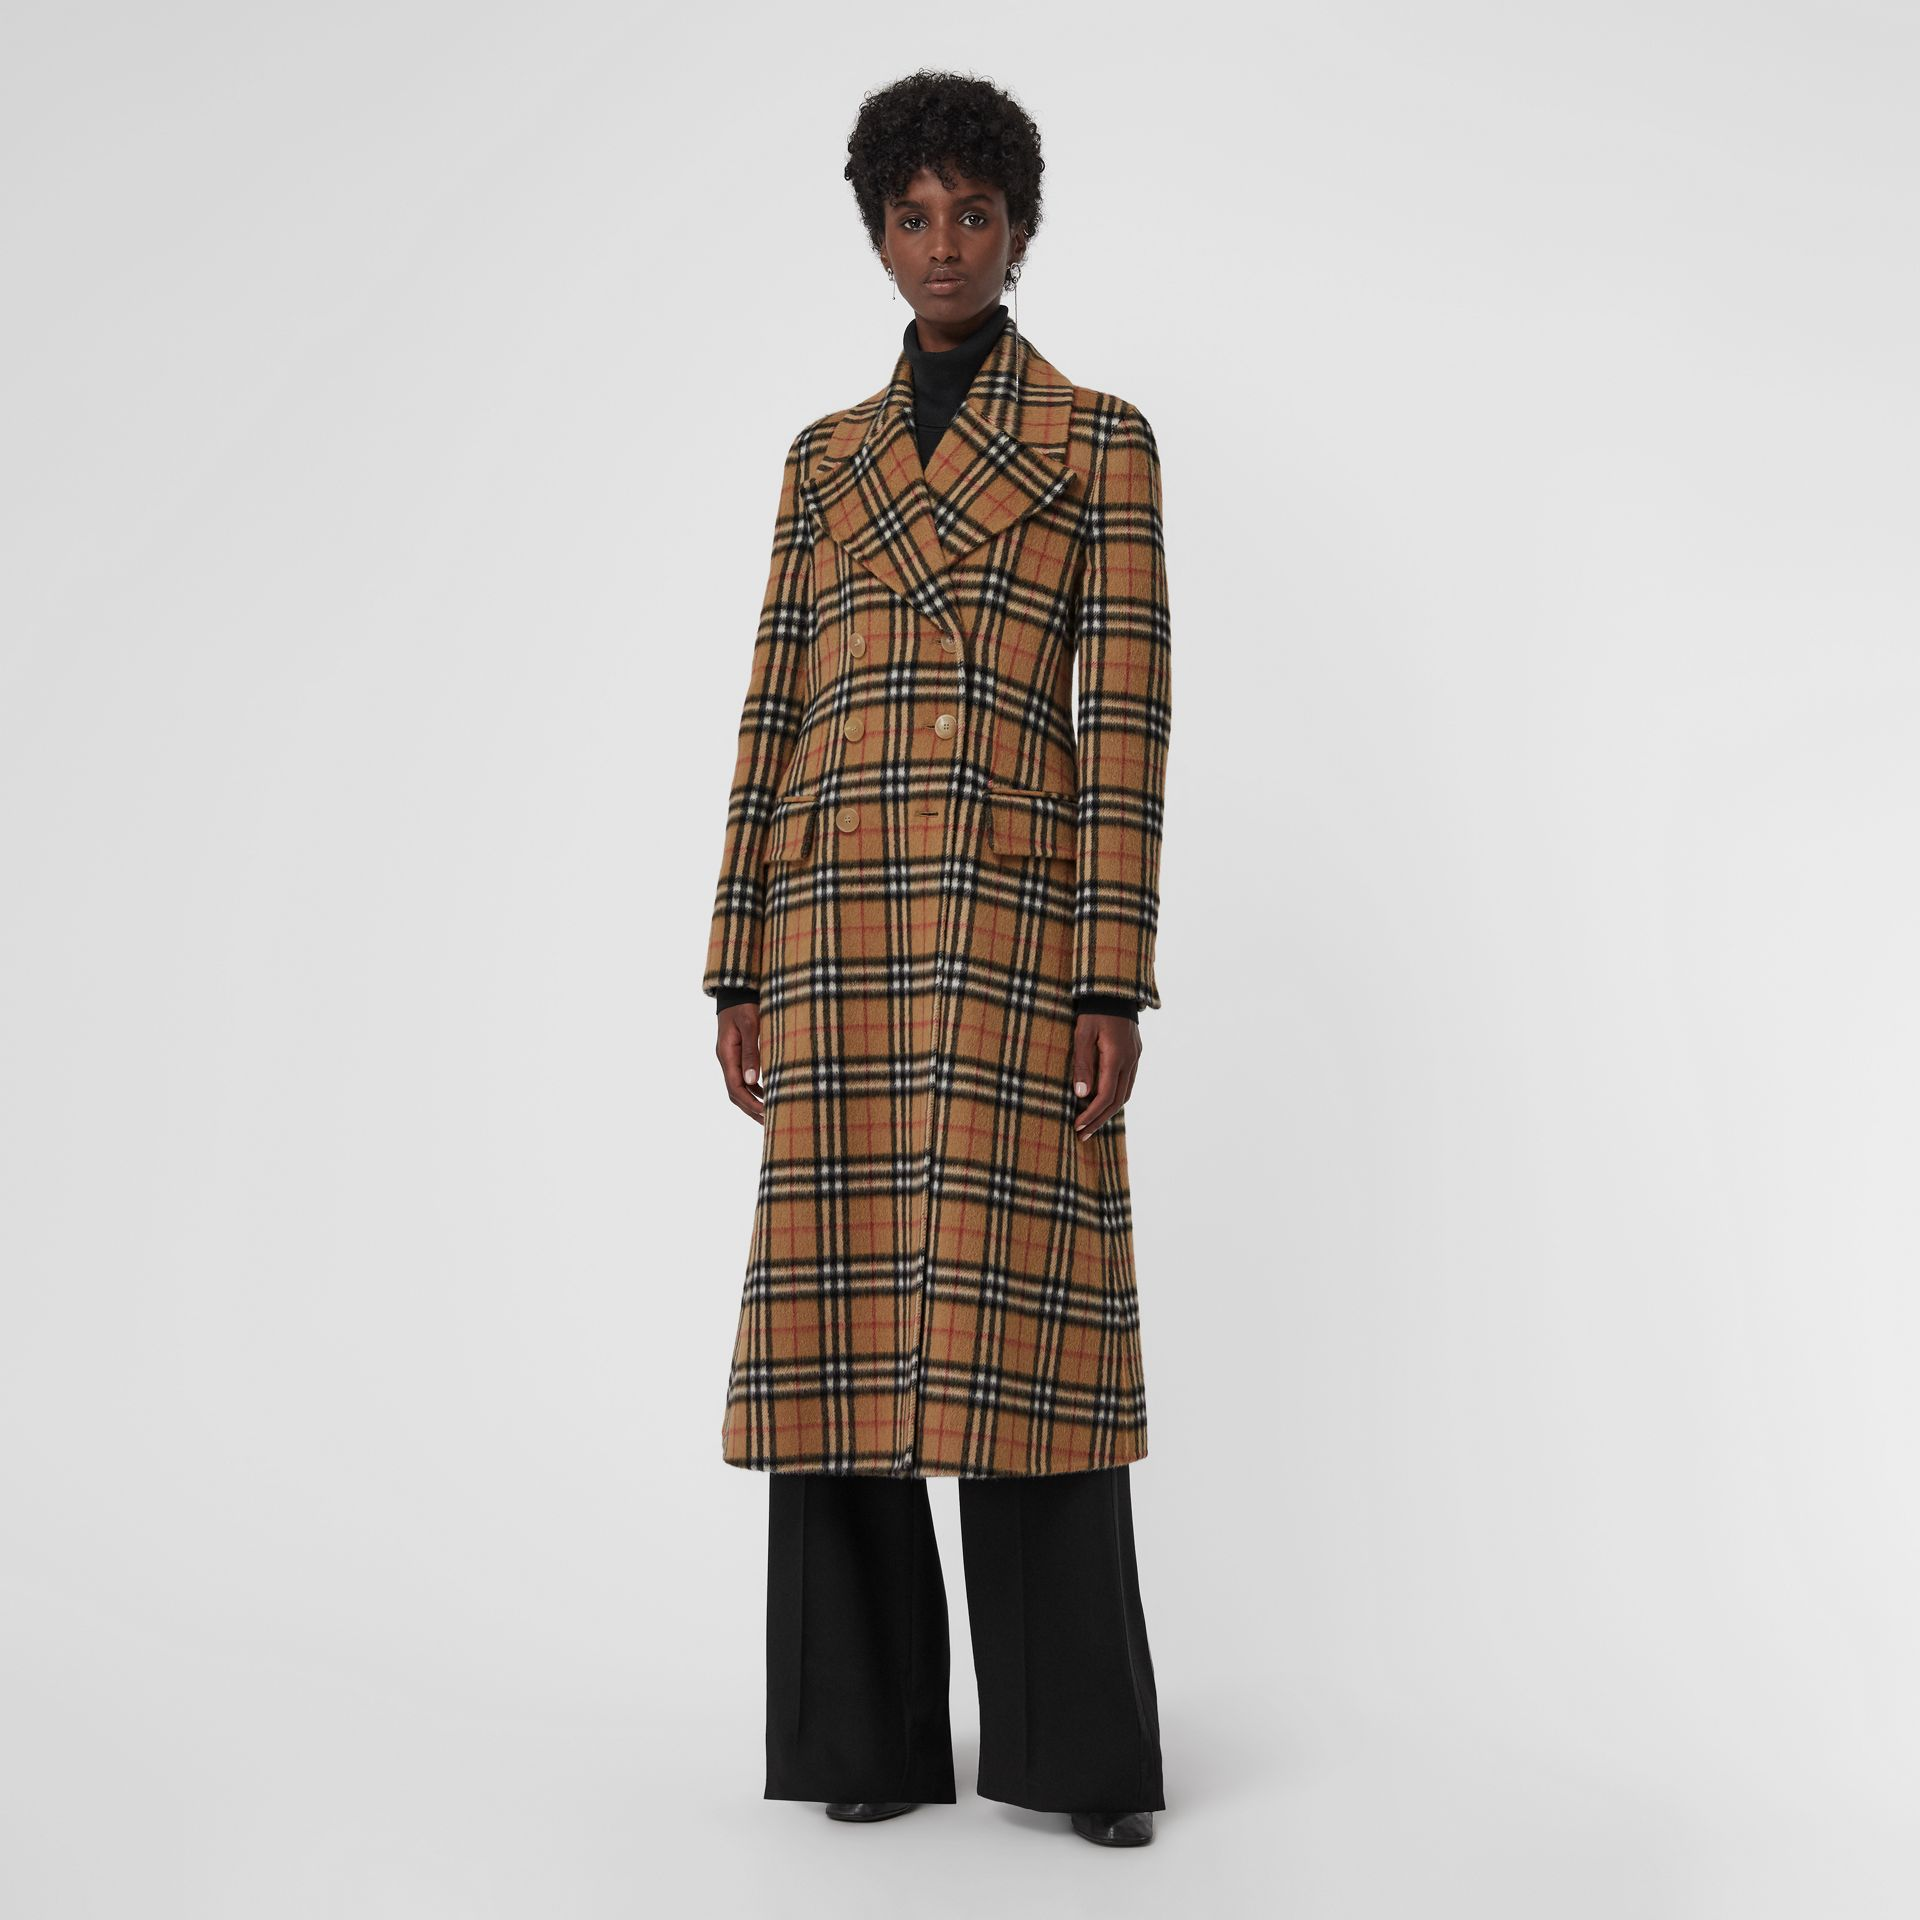 Manteau ajusté en alpaga à motif Vintage check (Jaune Antique) - Femme | Burberry - photo de la galerie 5